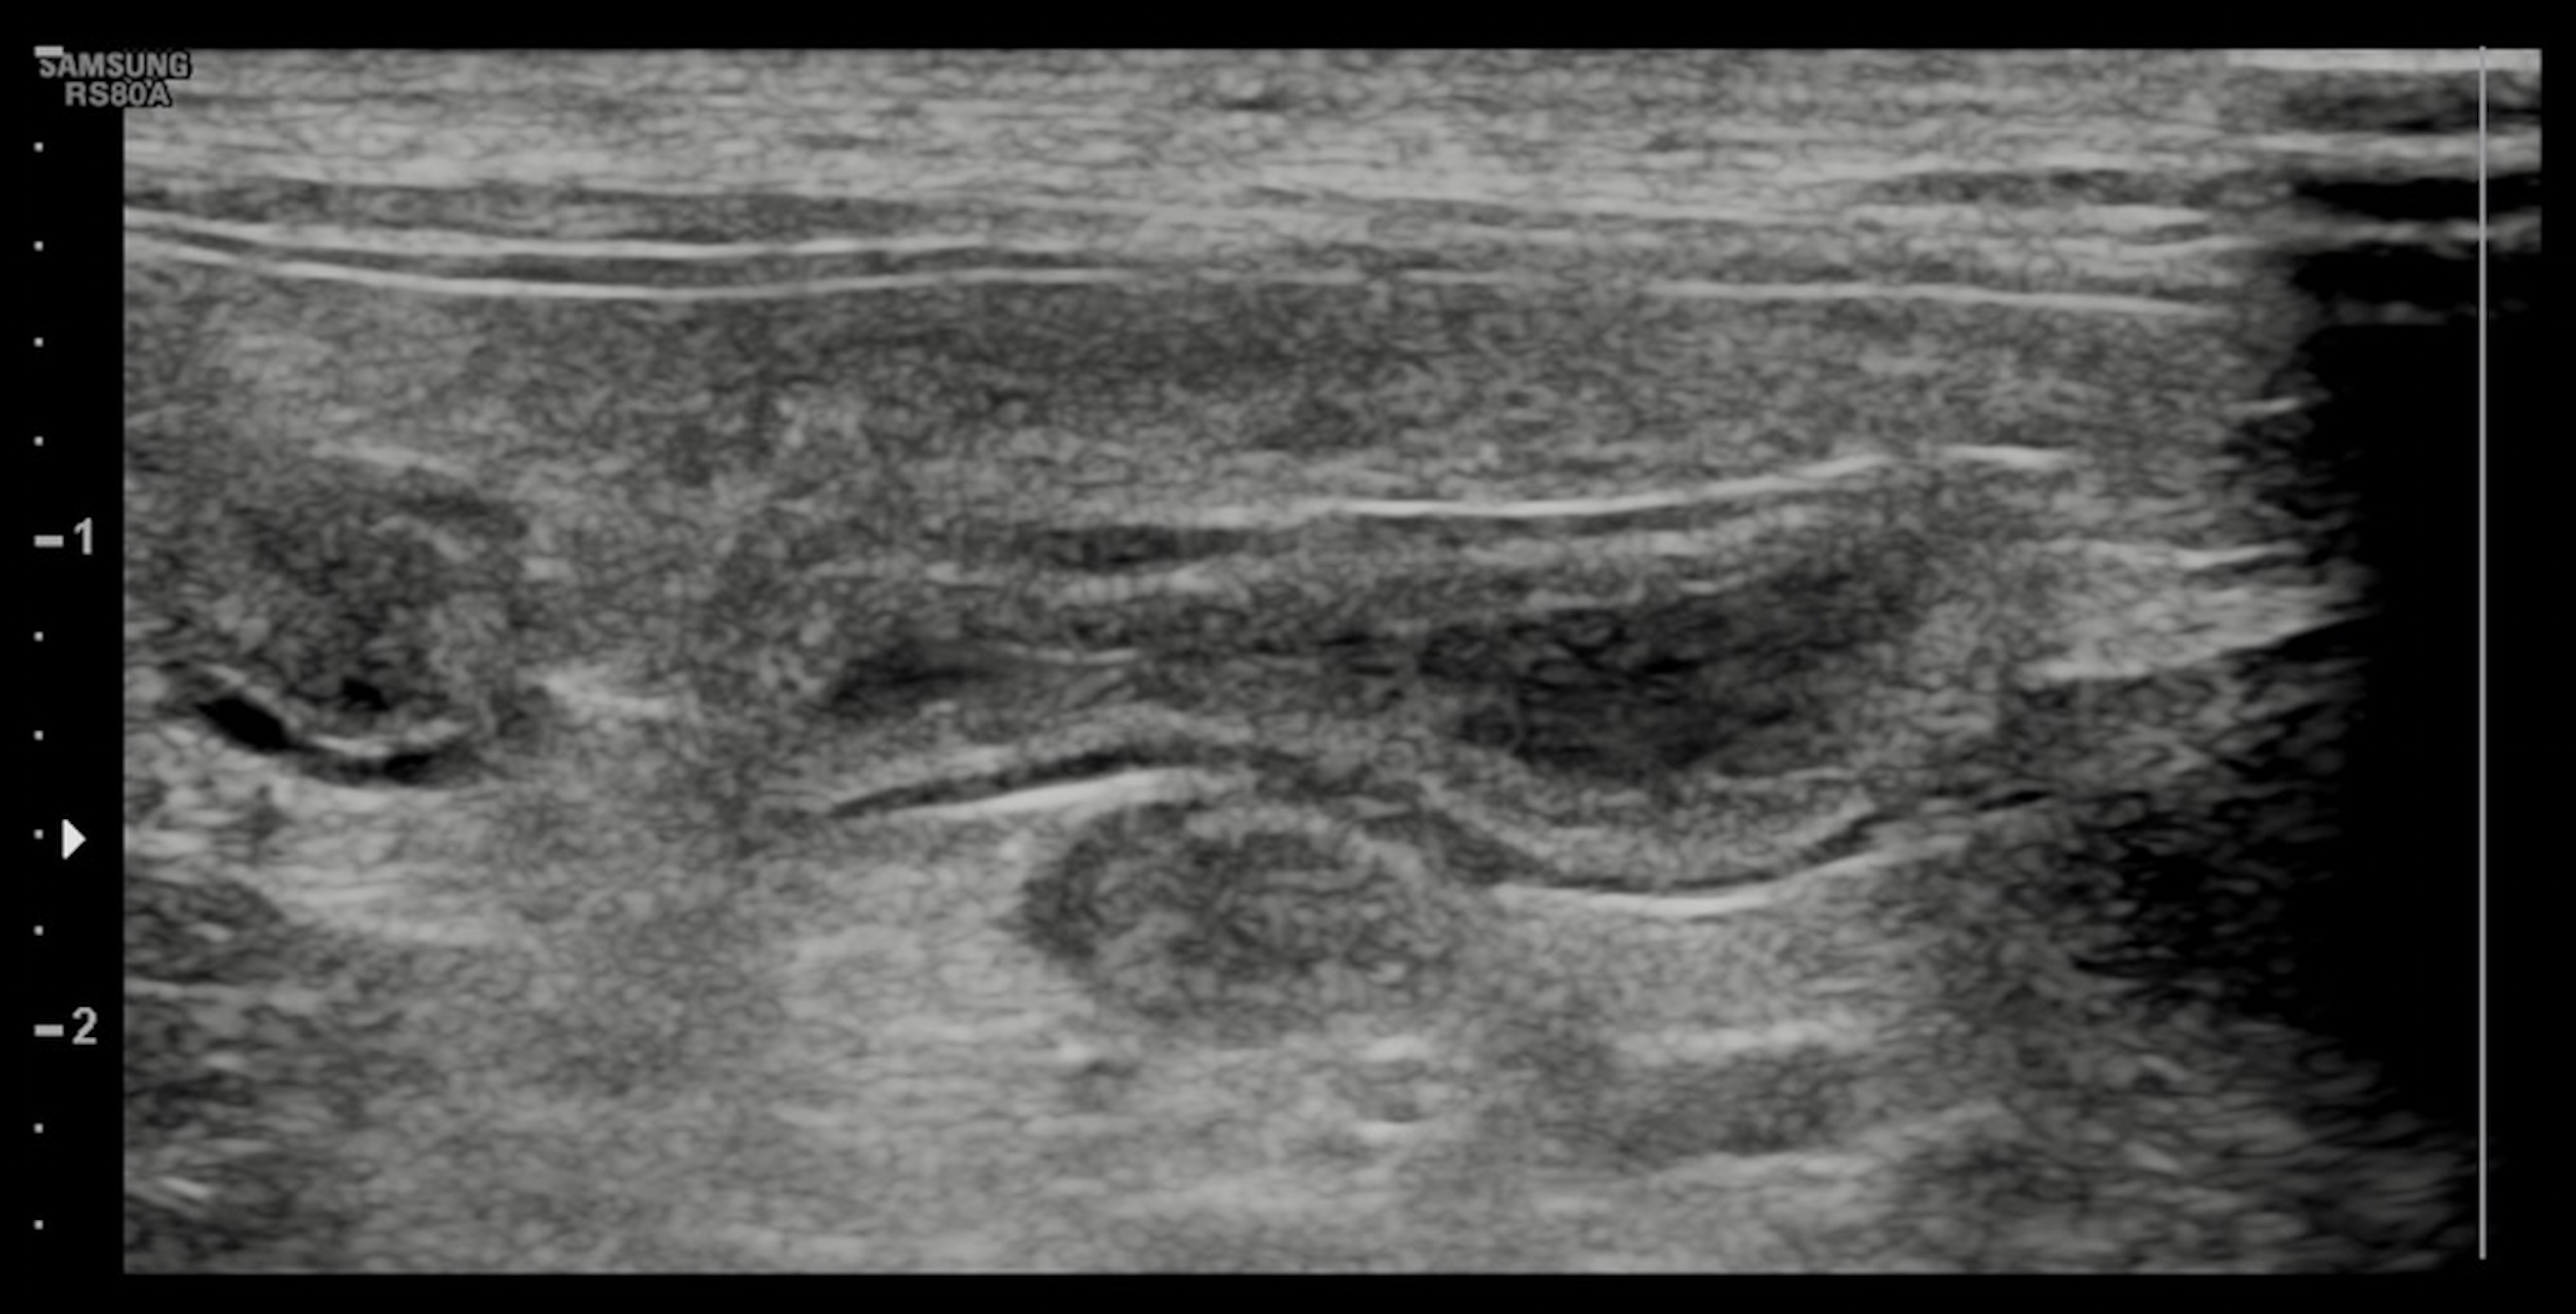 Abdominal ultrasound demonstrated no evidence of small intestinal obstruction or intussusception; findings were suggestive of enteritis.